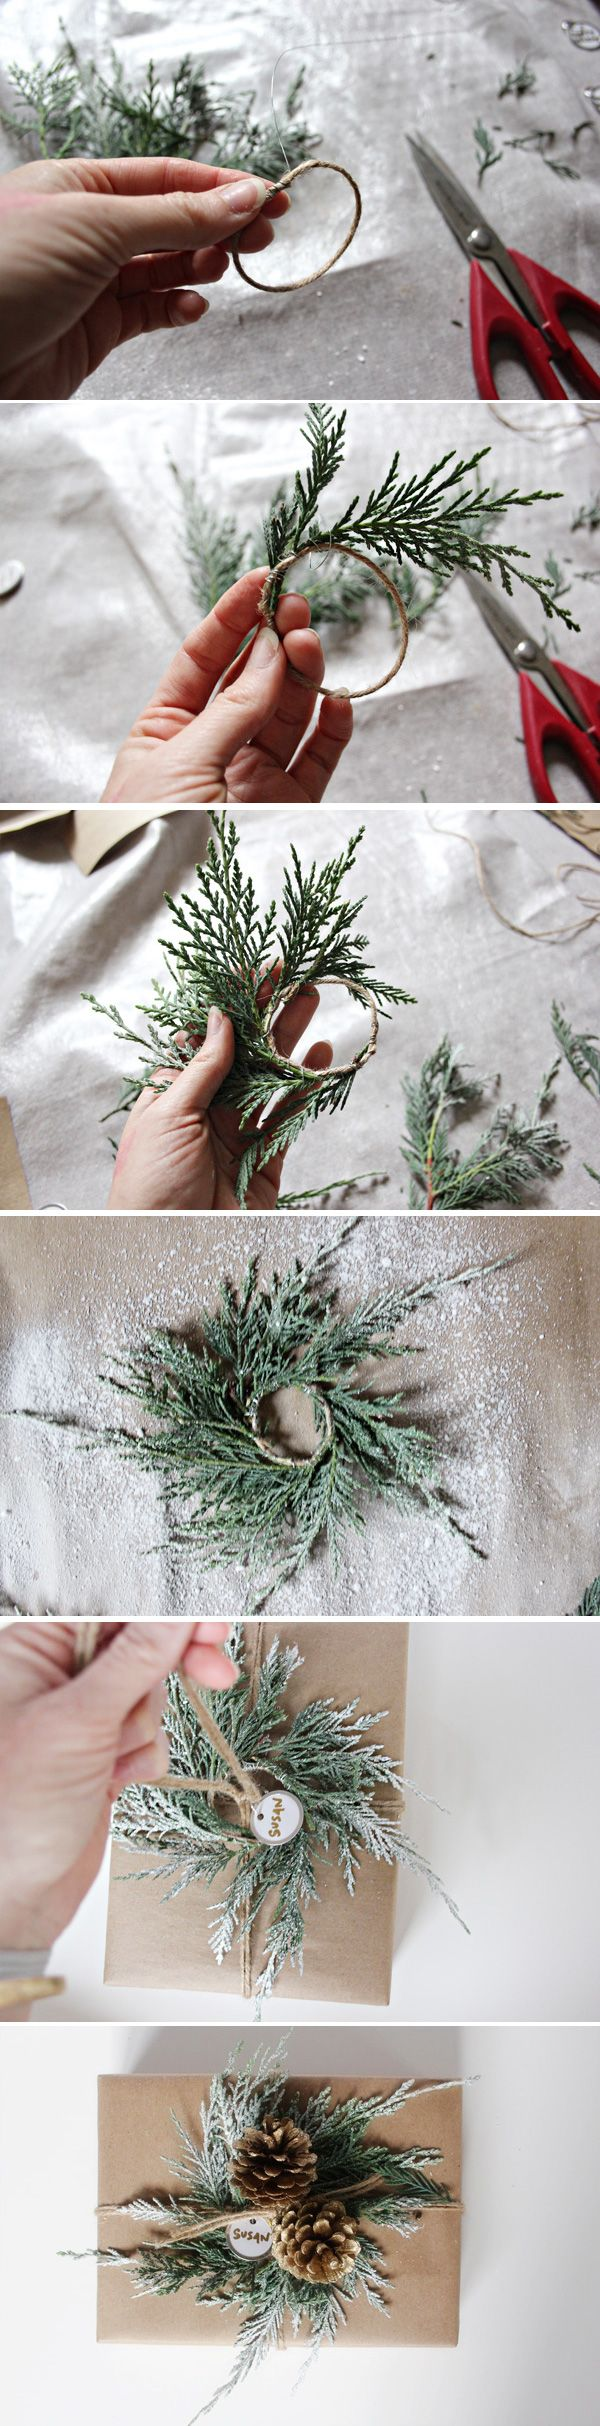 Christmas Gift Wrapping Ideas: Cedar Mini-Wreath